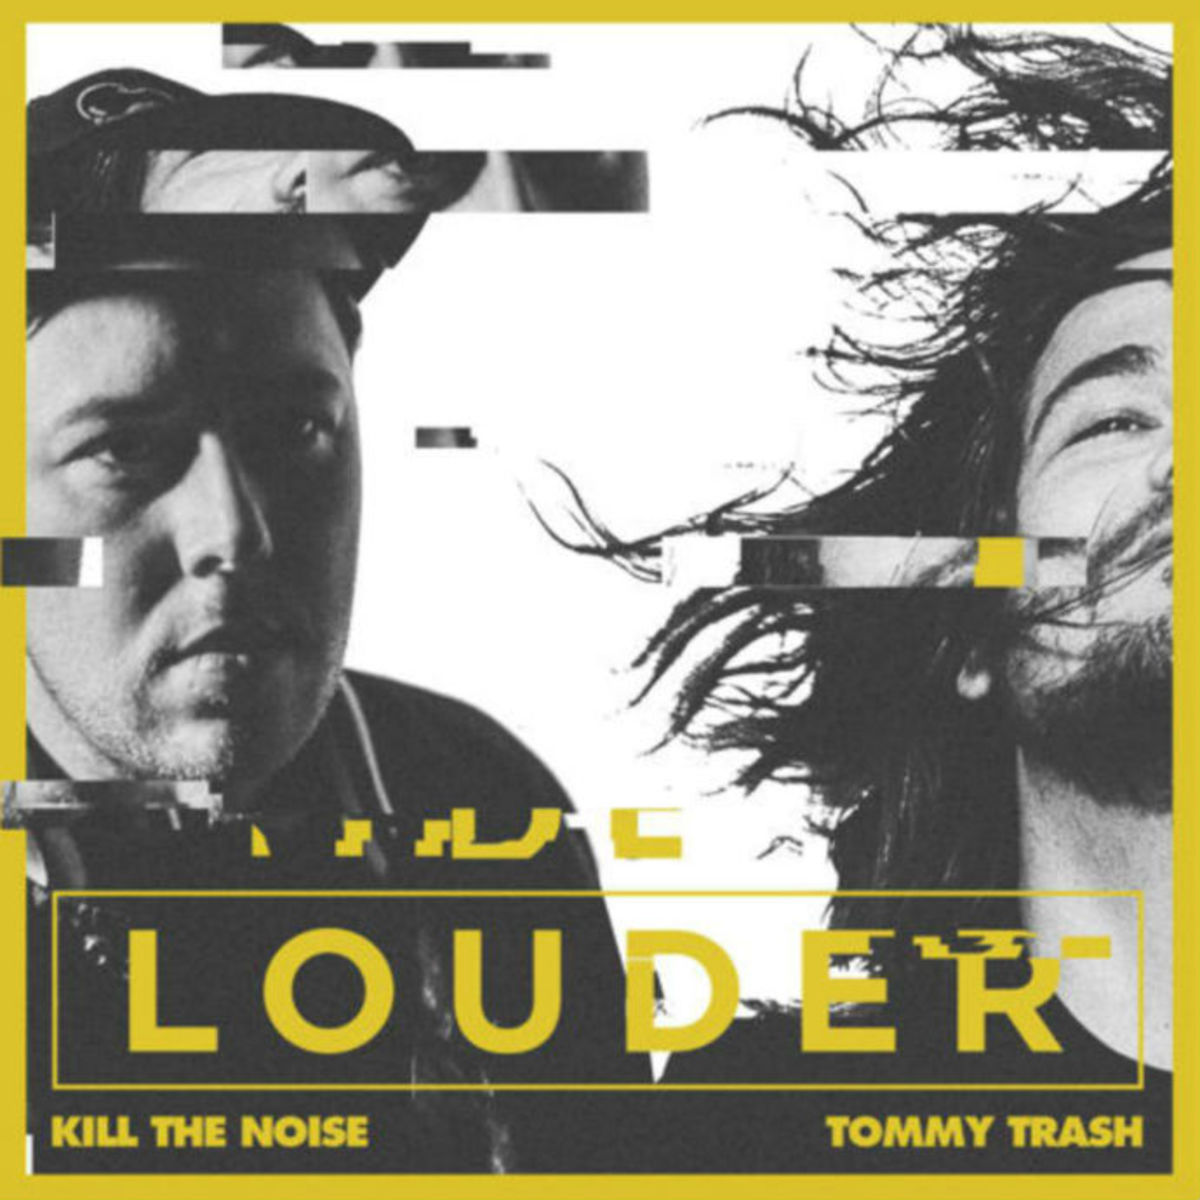 Milo & Otis, Tommy Trash and Kill The Noise at Webster Hall 5/15 - 5/16